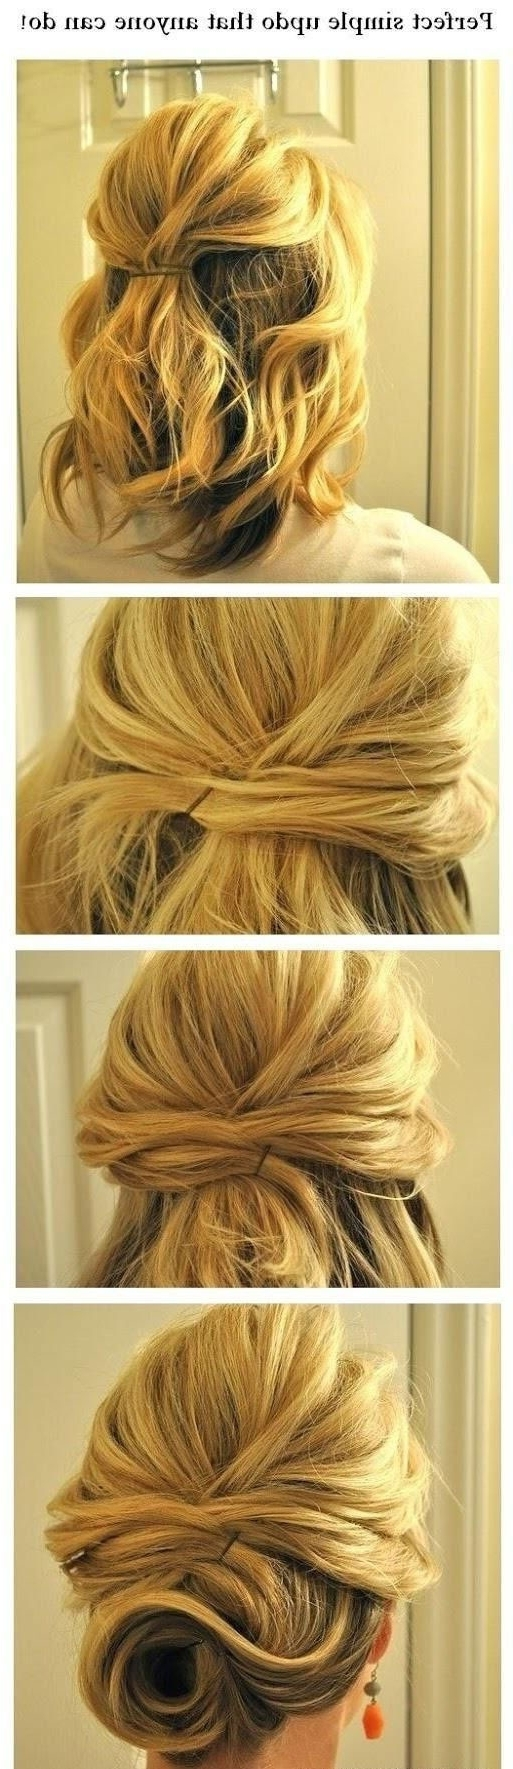 Most Current Simple Wedding Hairstyles For Medium Length Hair In 15 Cute And Easy Hairstyle Tutorials For Medium Length Hair – Gurl (View 10 of 15)